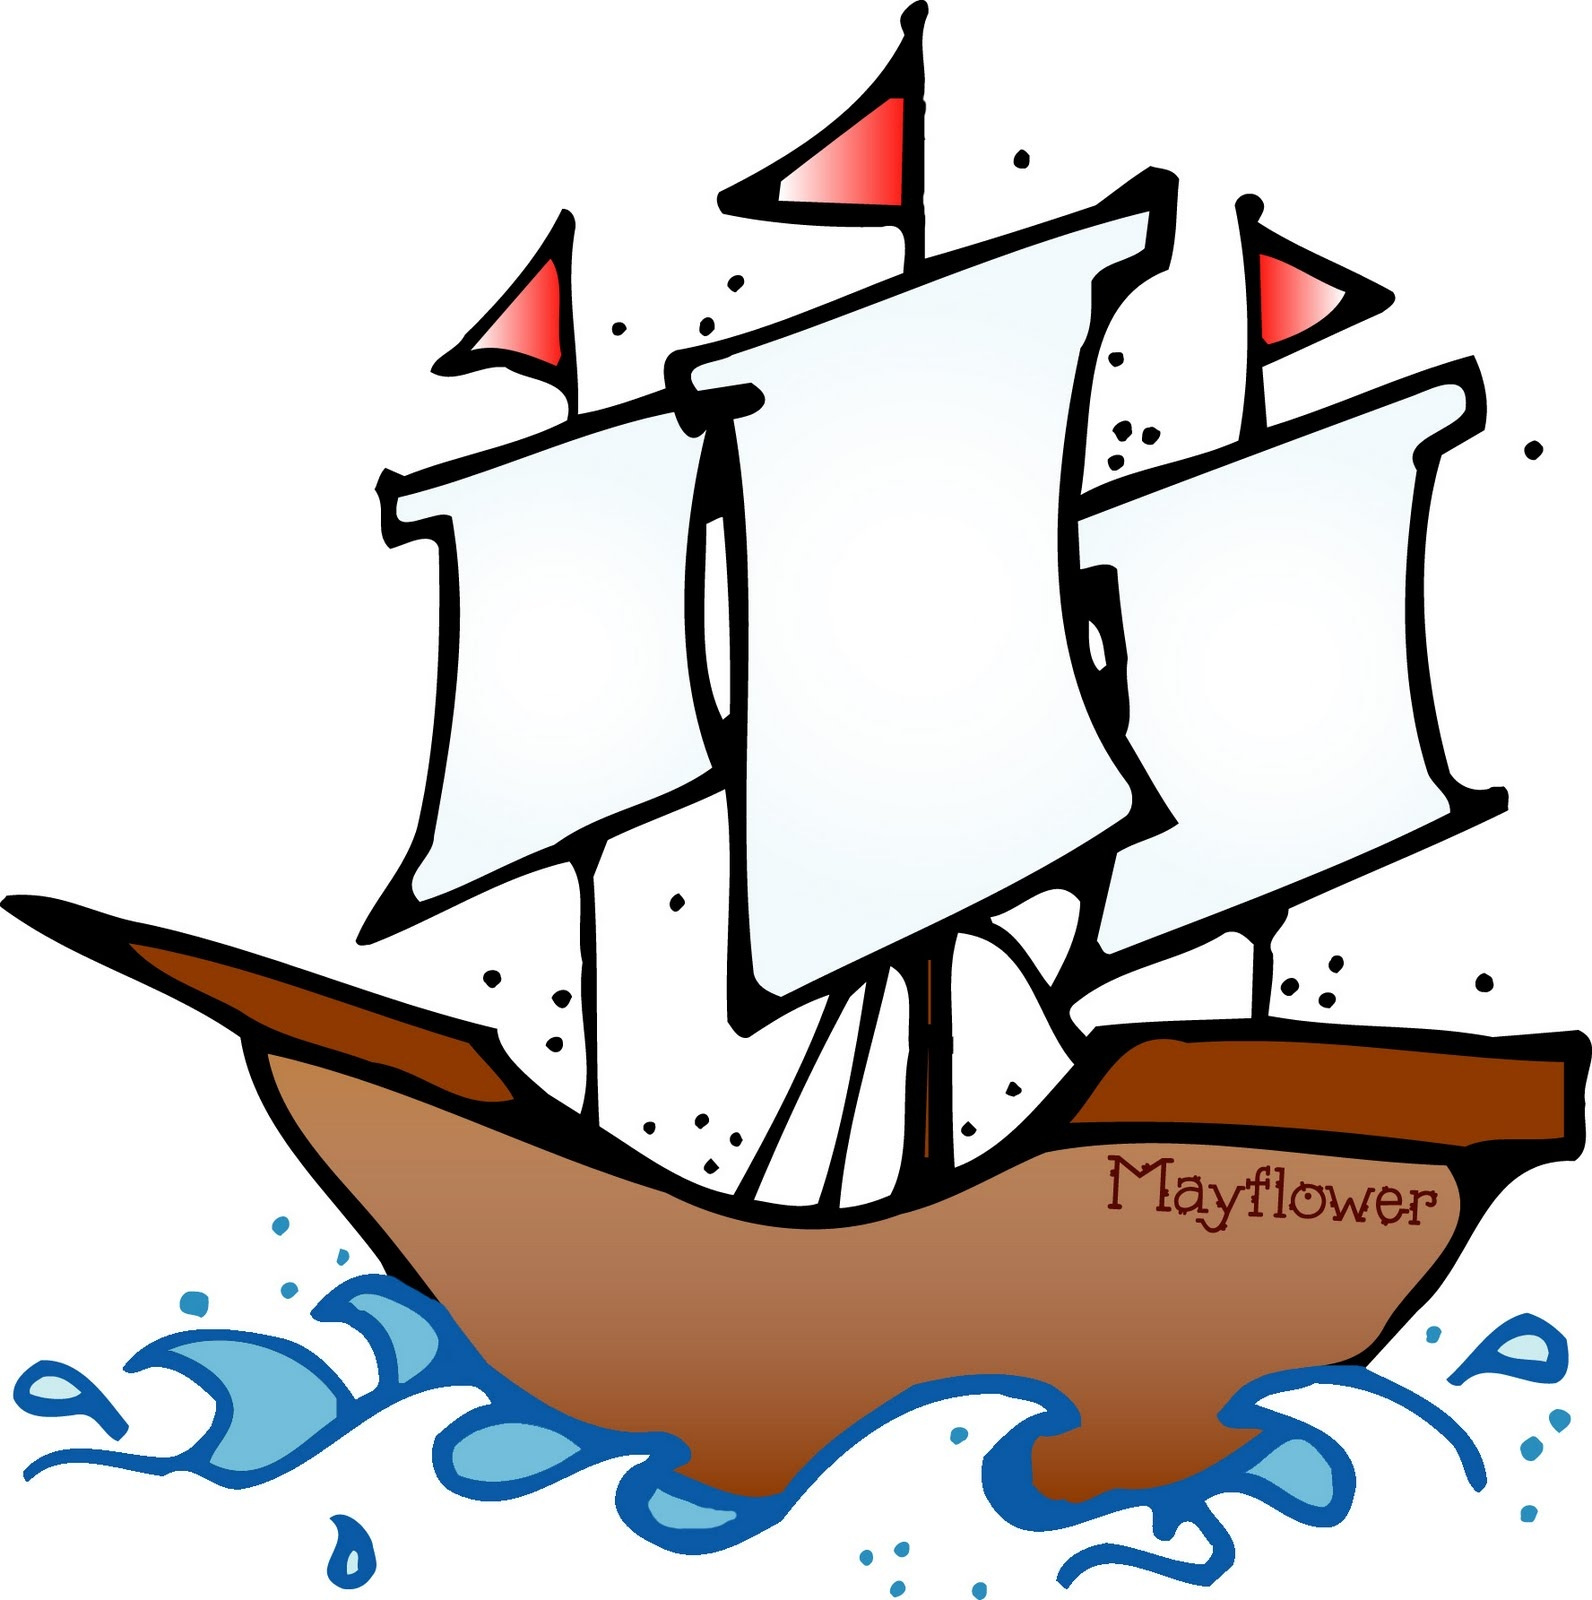 New gallery digital collection. Boat clipart mayflower